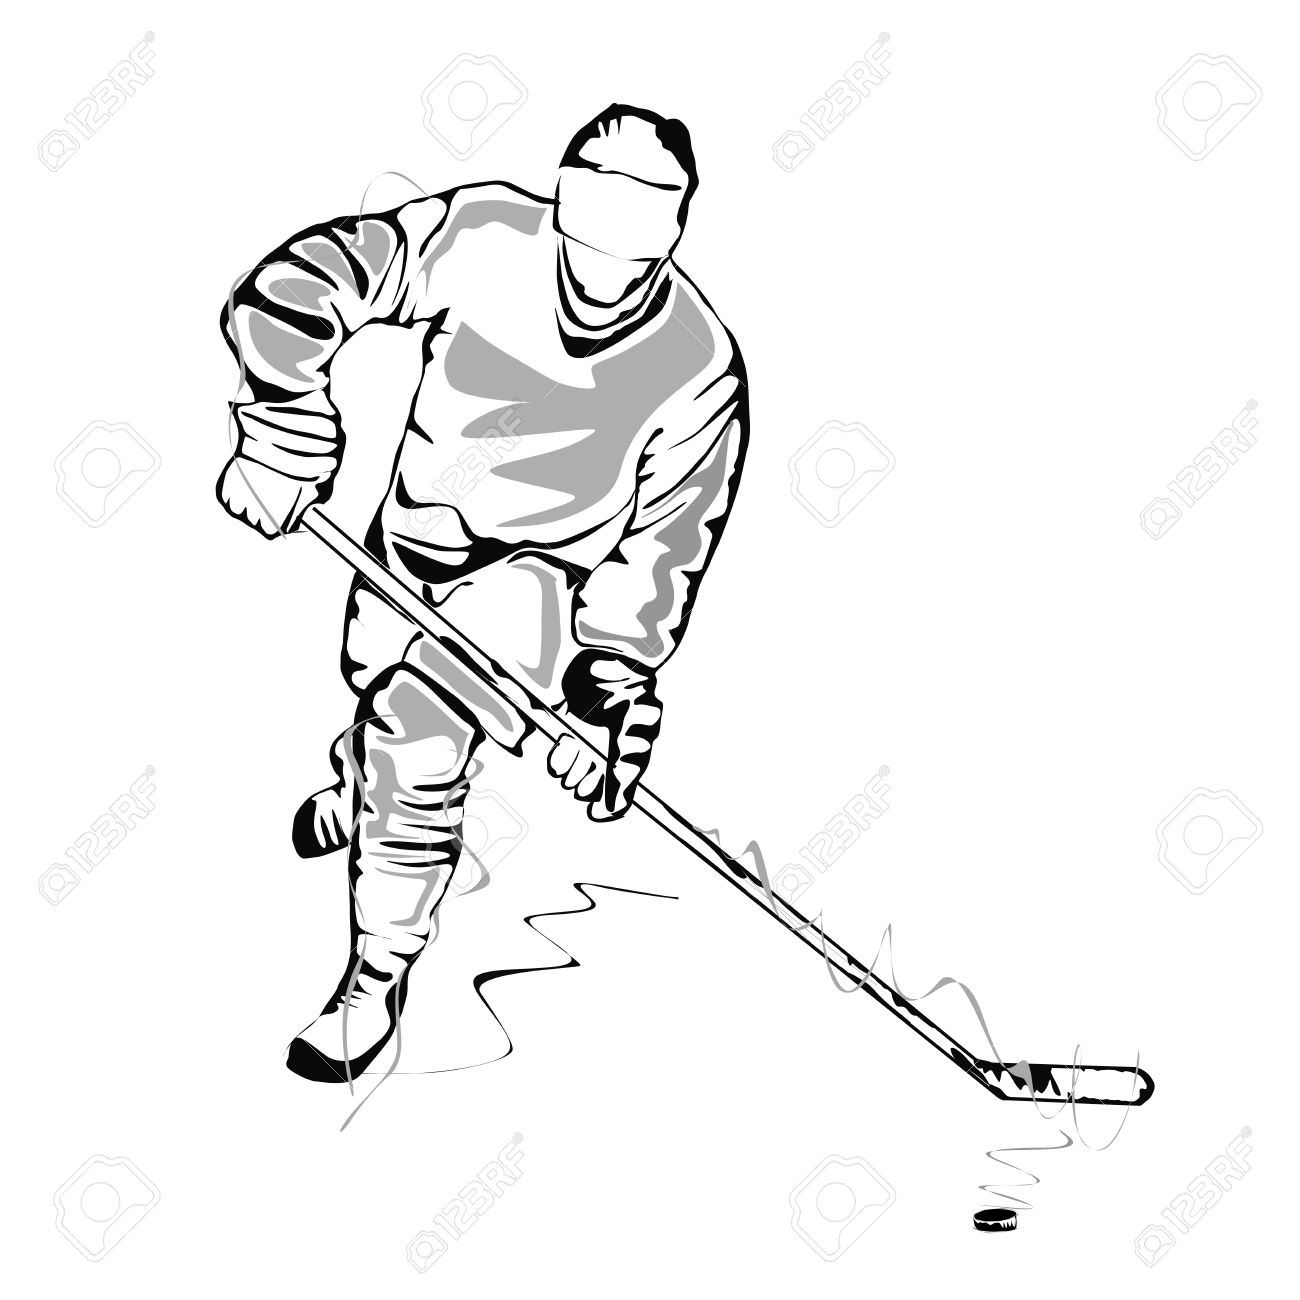 1300x1300 Hockey Player Sketch Royalty Free Cliparts, Vectors, And Stock